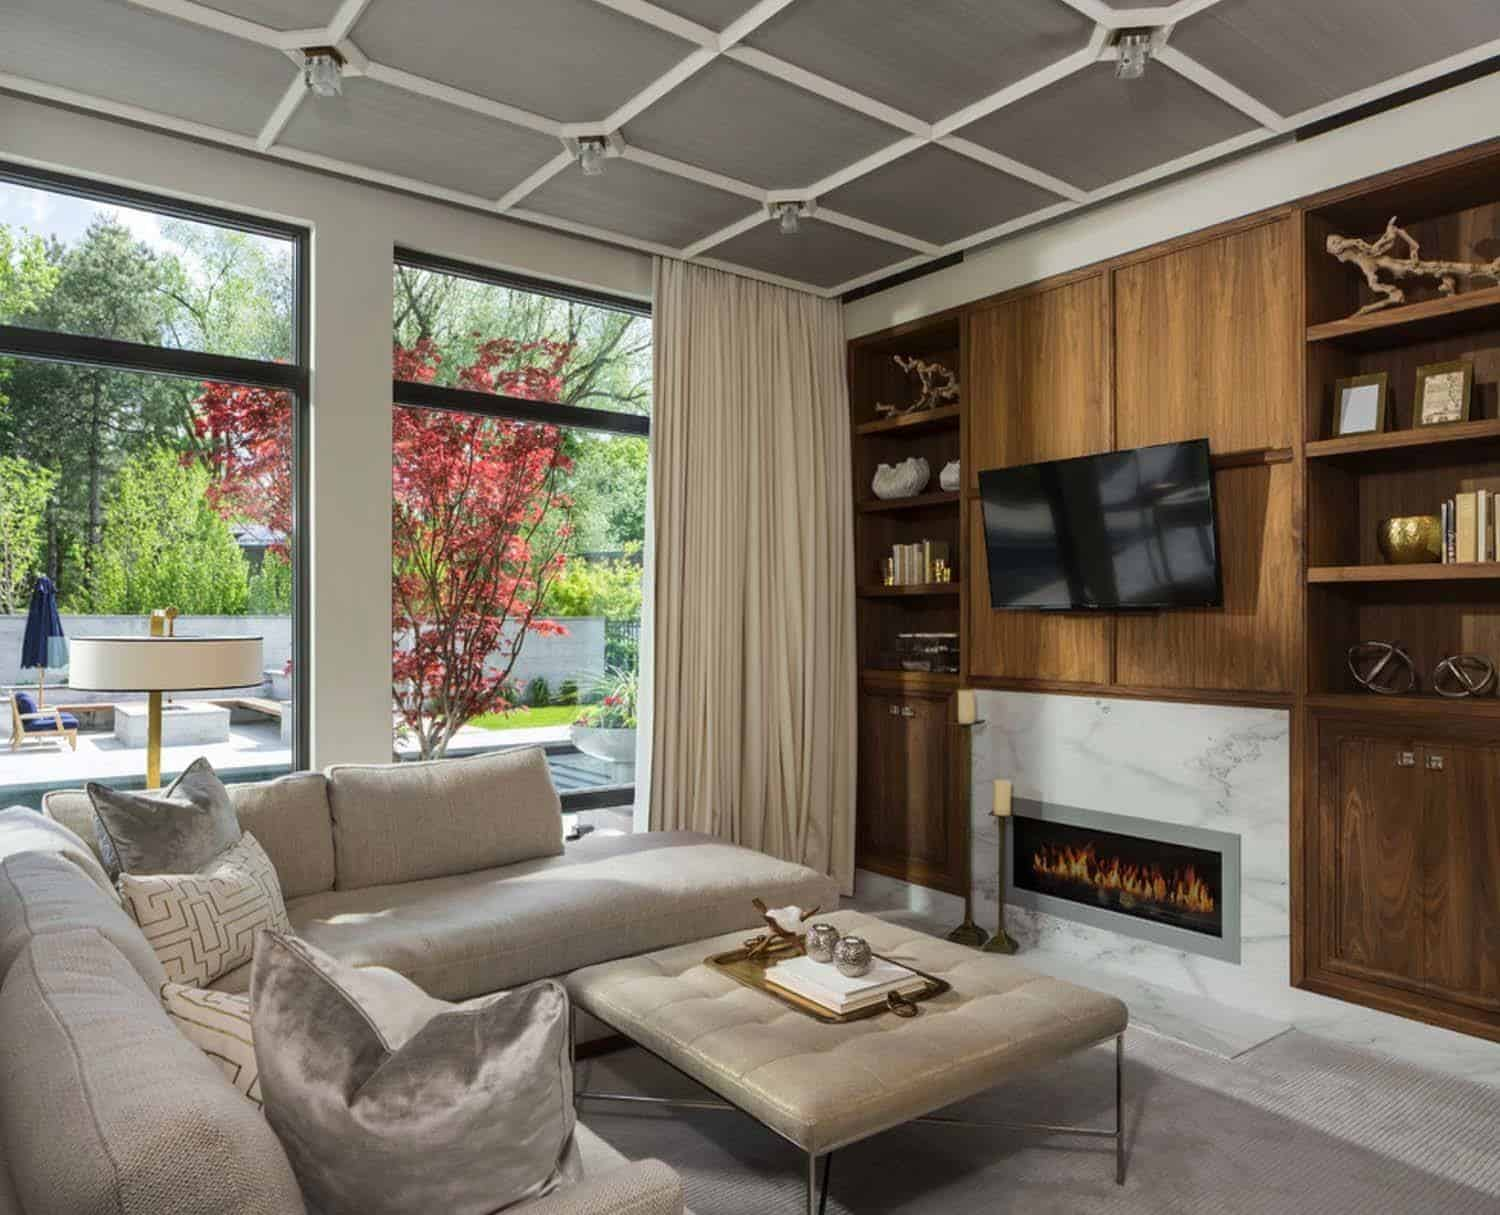 Modern-Residence-Think Architecture-19-1 Kindesign